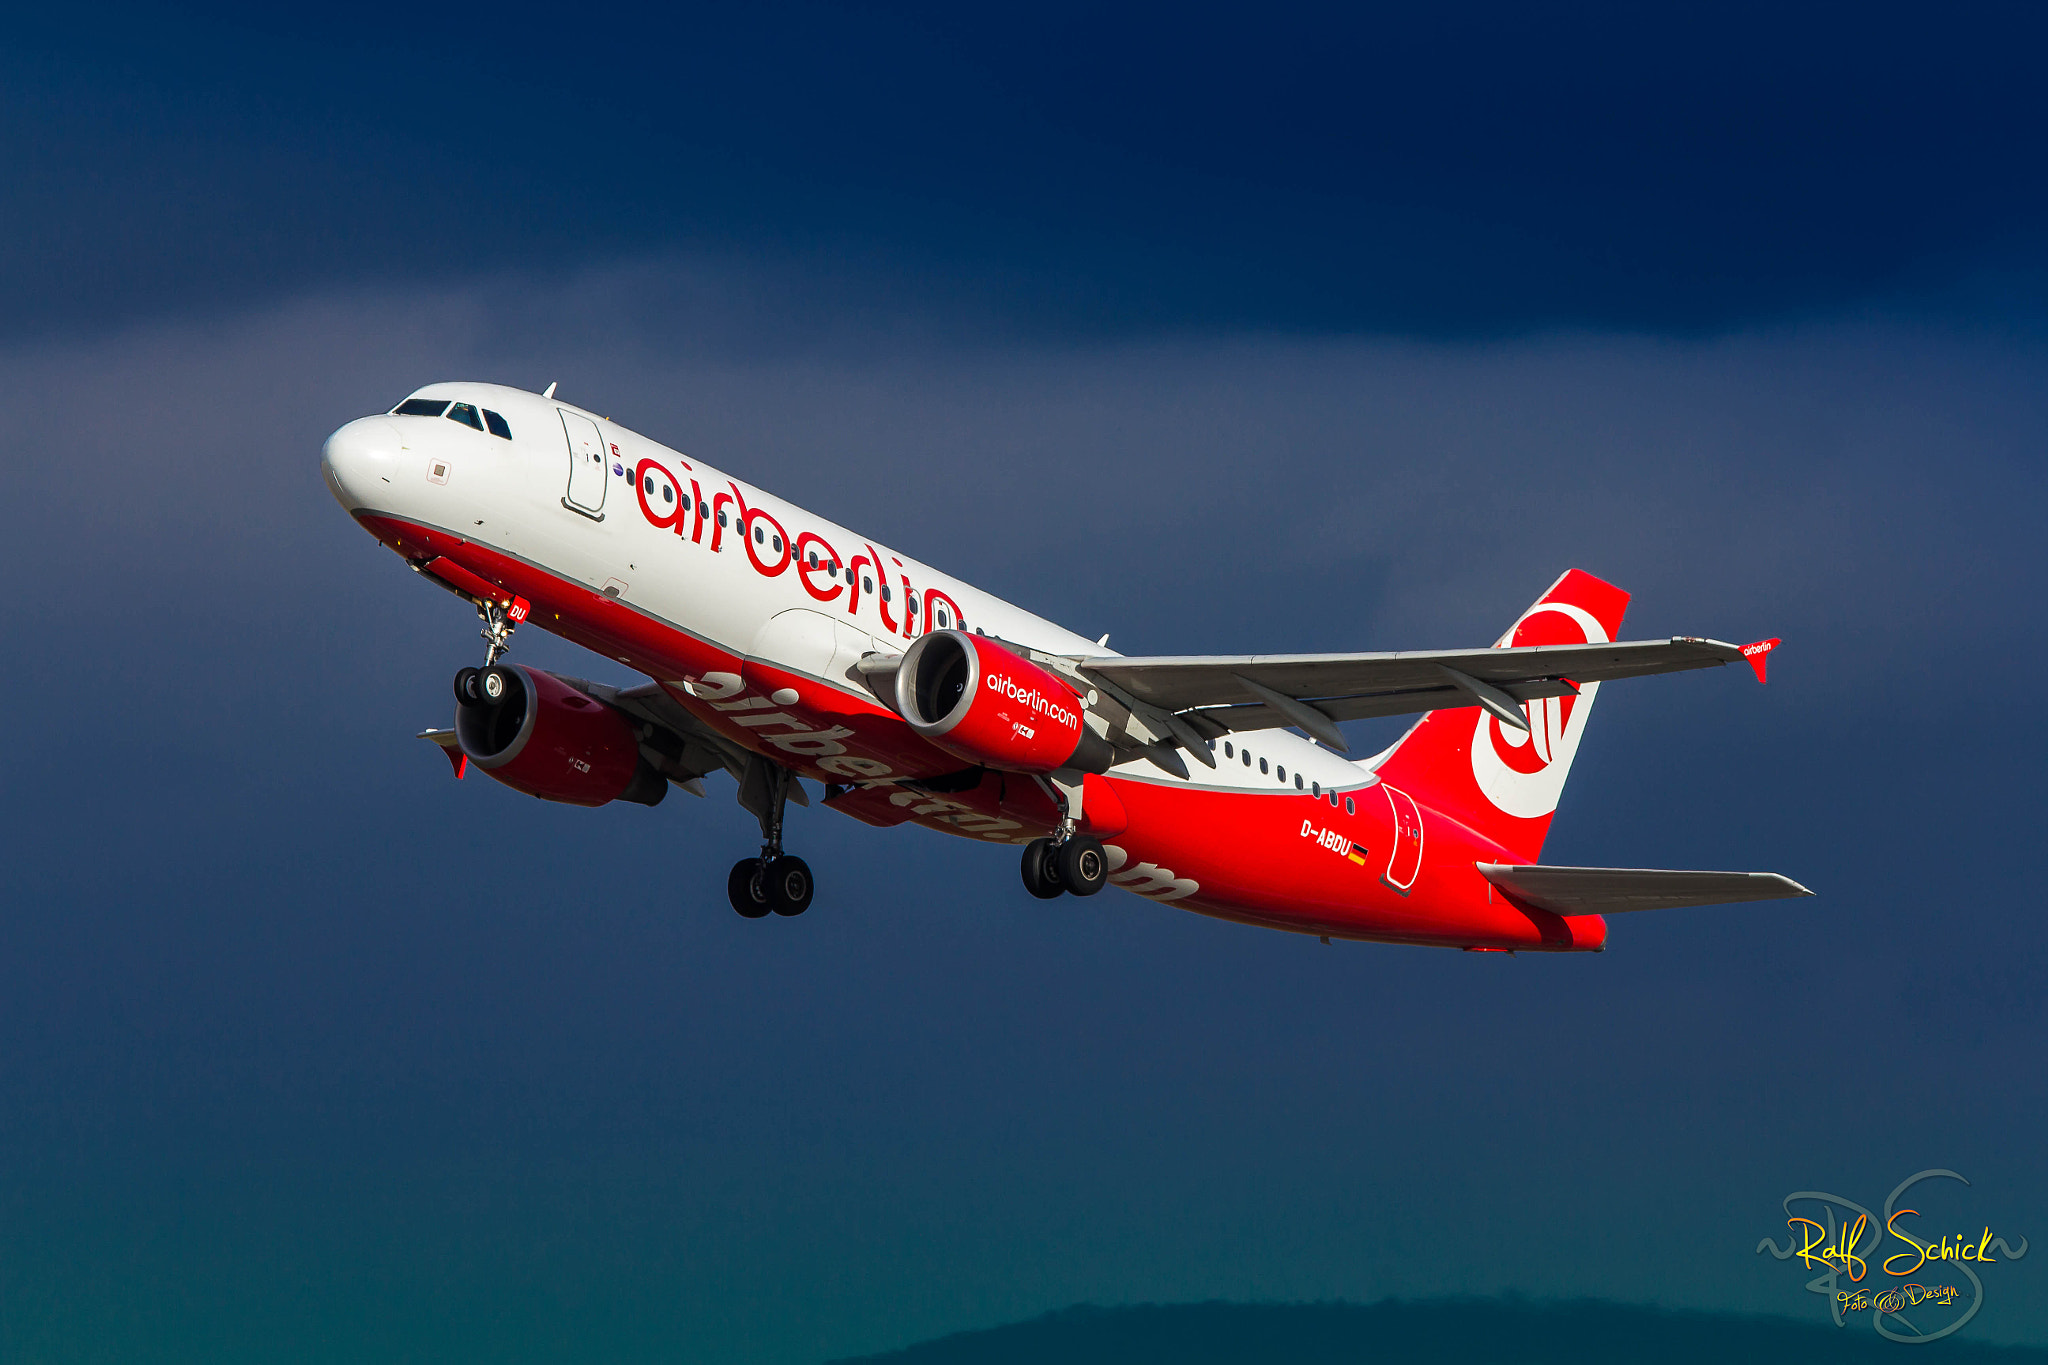 Photograph Air Berlin by Ralf Schick on 500px